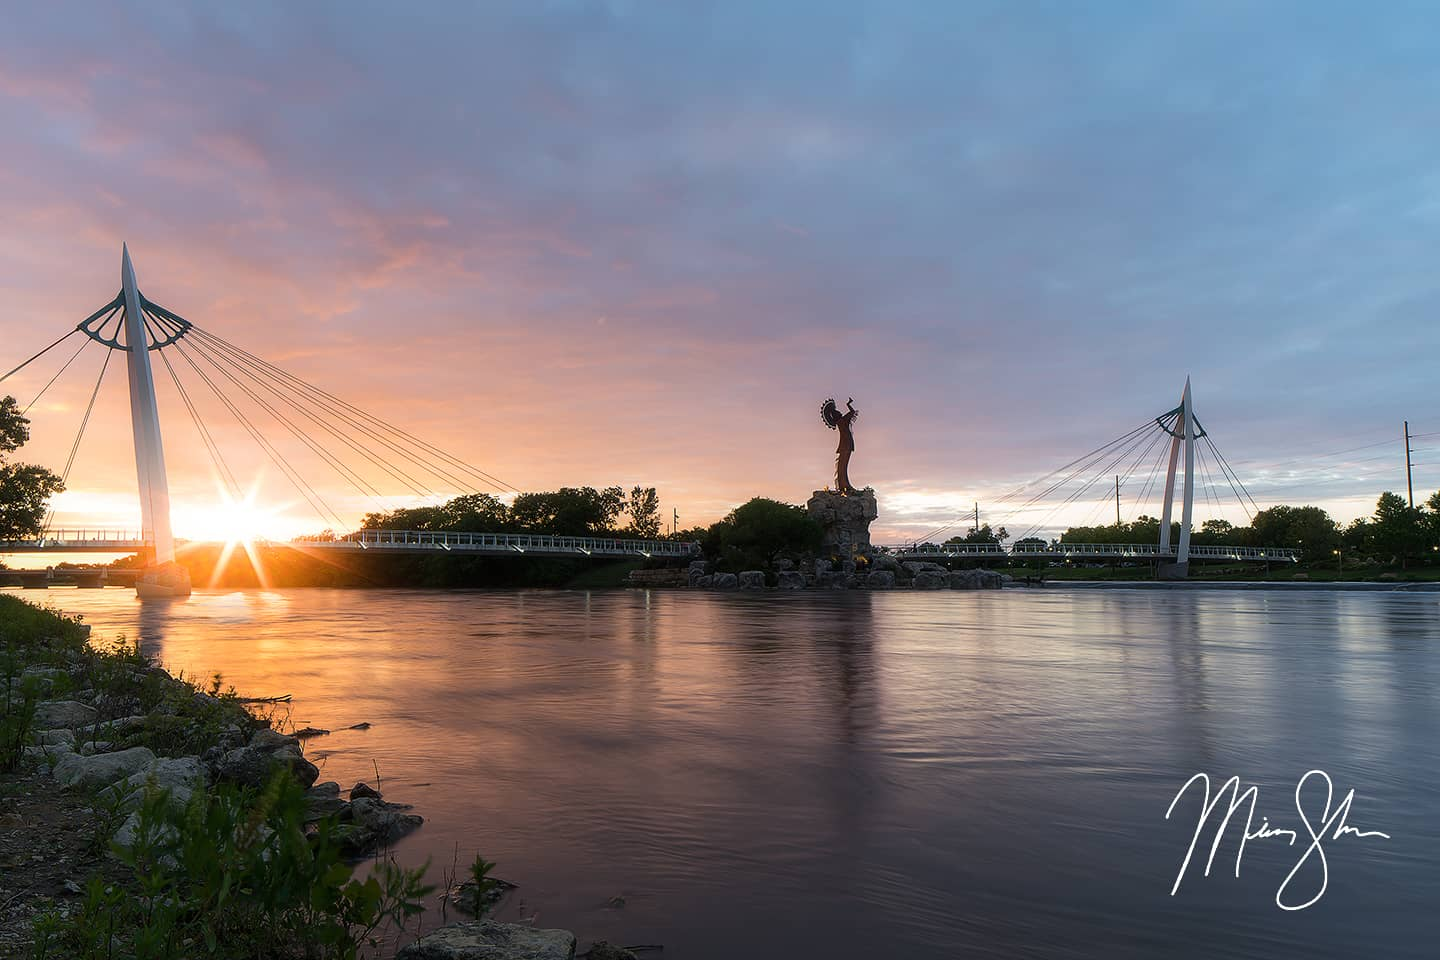 Open edition fine art print of Brilliant Sunburst Sunset at the Keeper of the Plains from Mickey Shannon Photography. Location: Keeper of the Plains, Wichita, Kansas